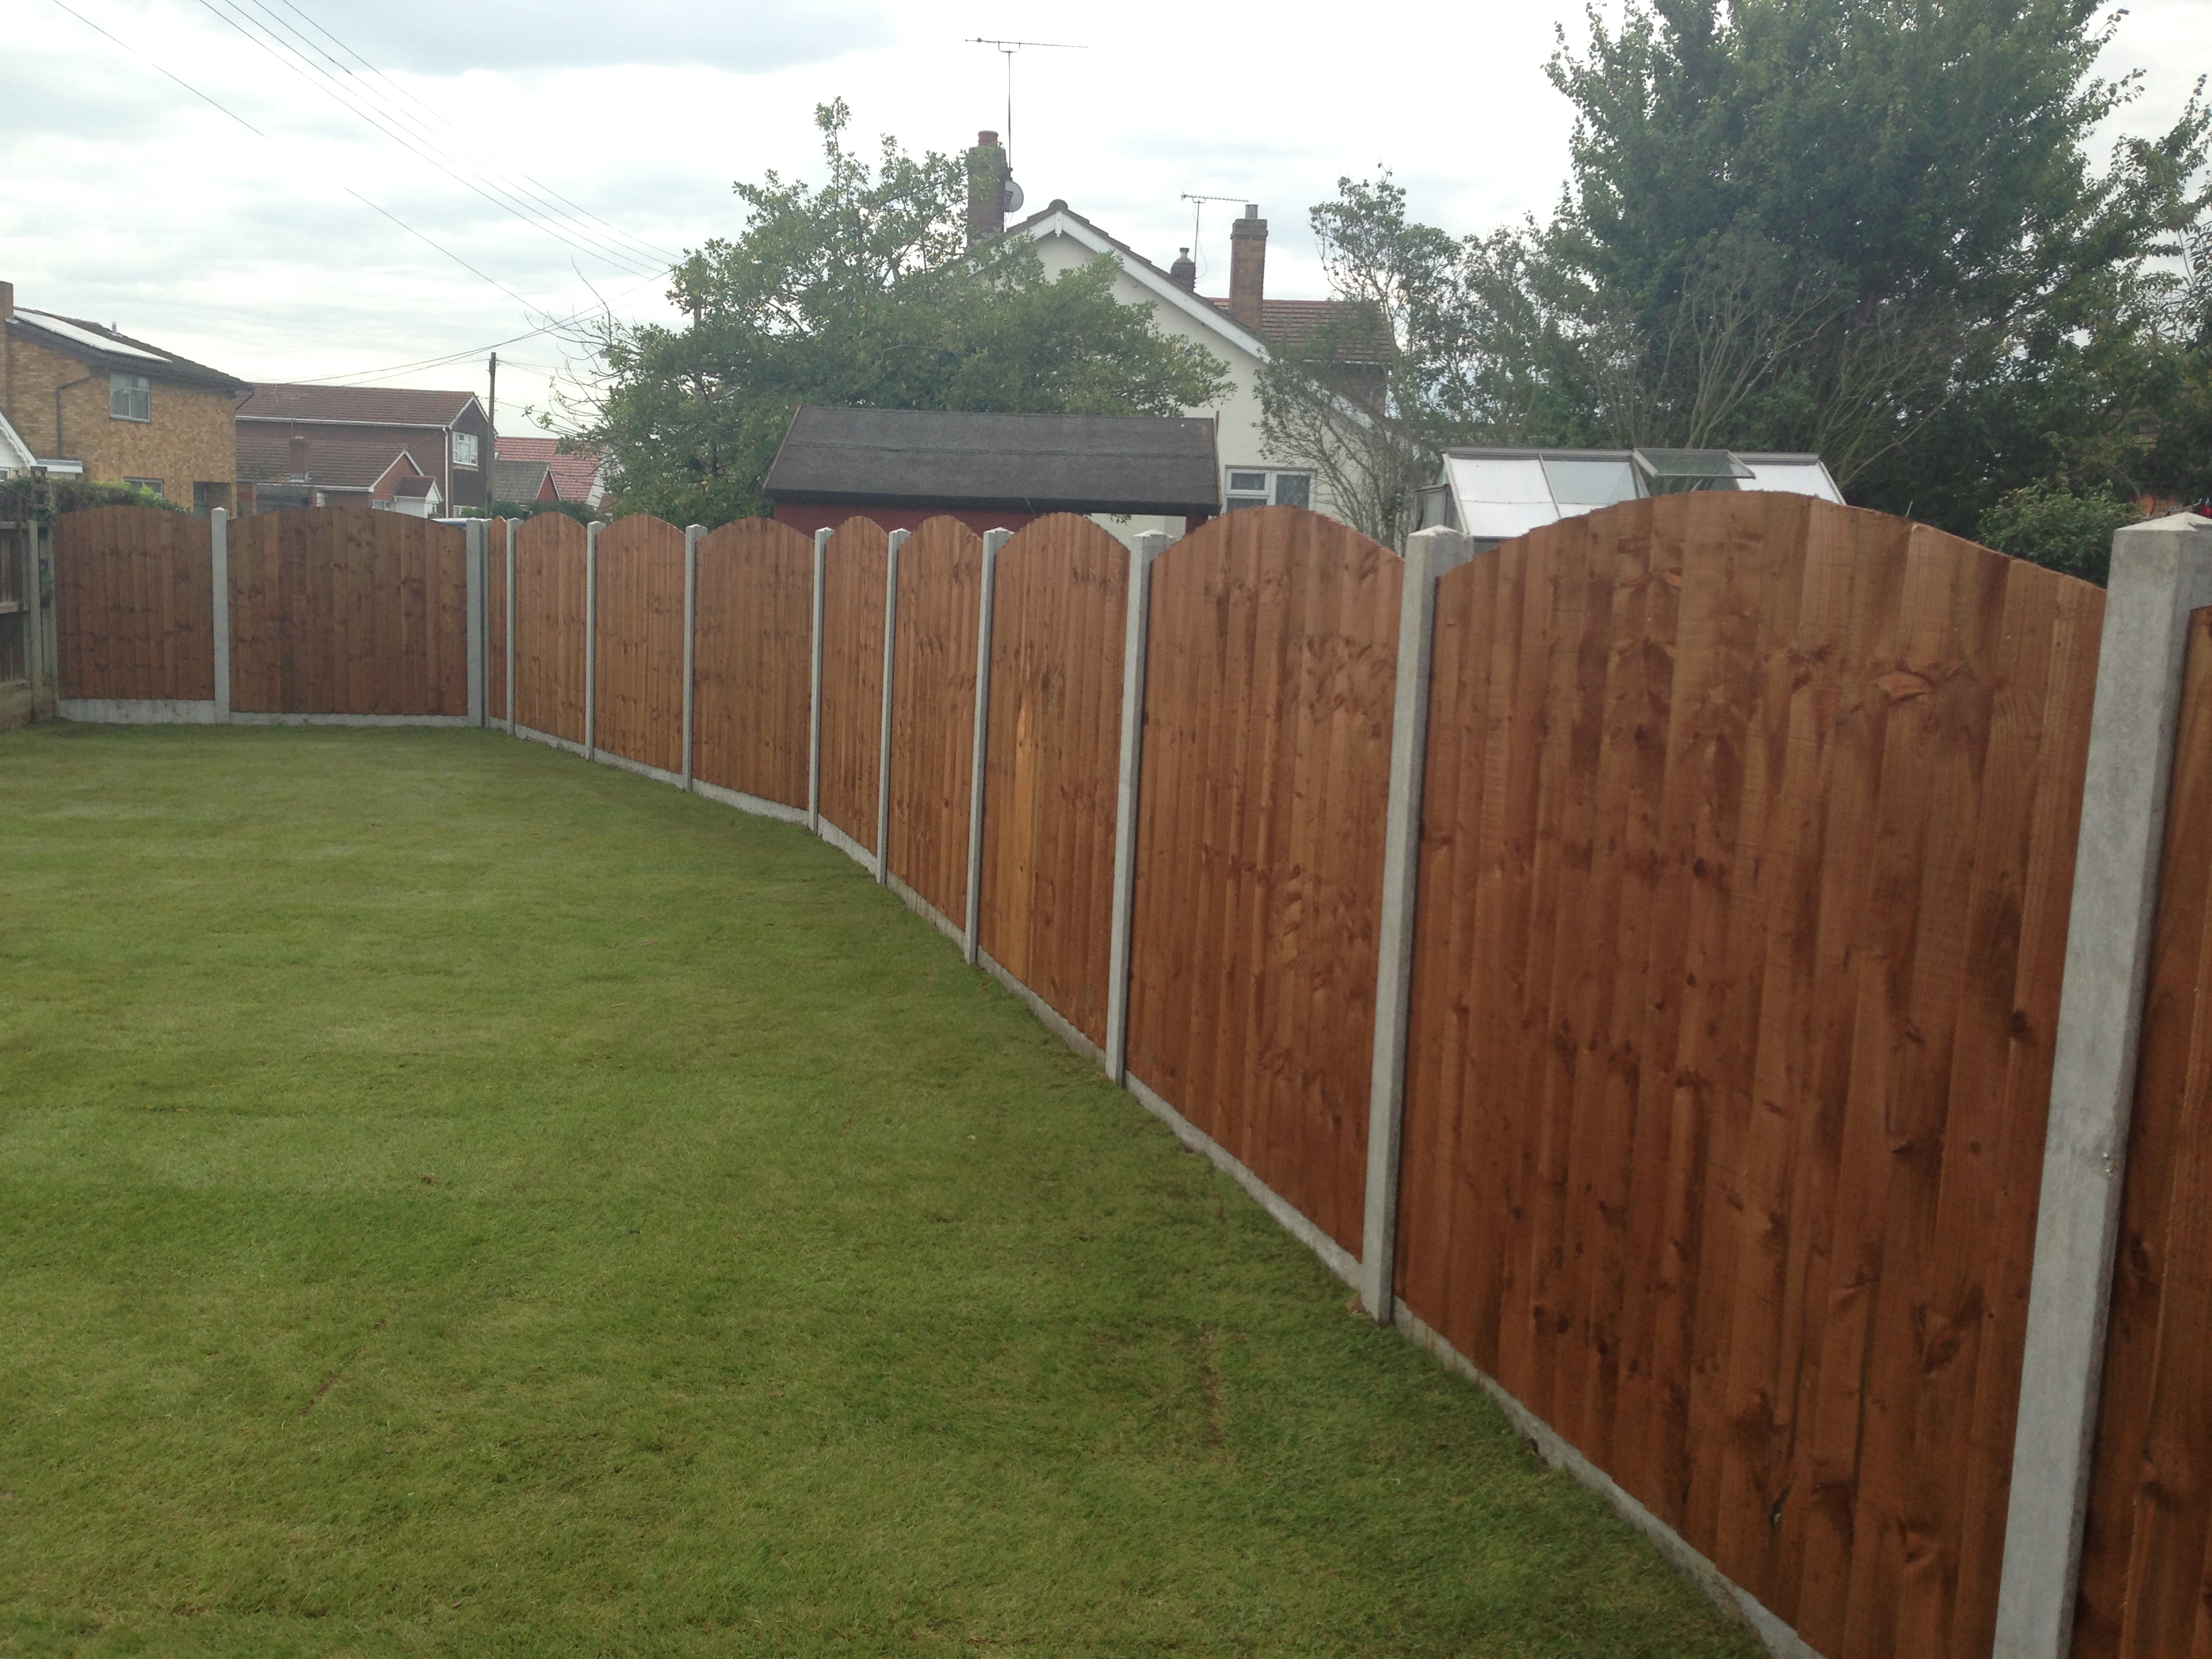 feather edged fencing, oval top, concrete posts and gravel boards